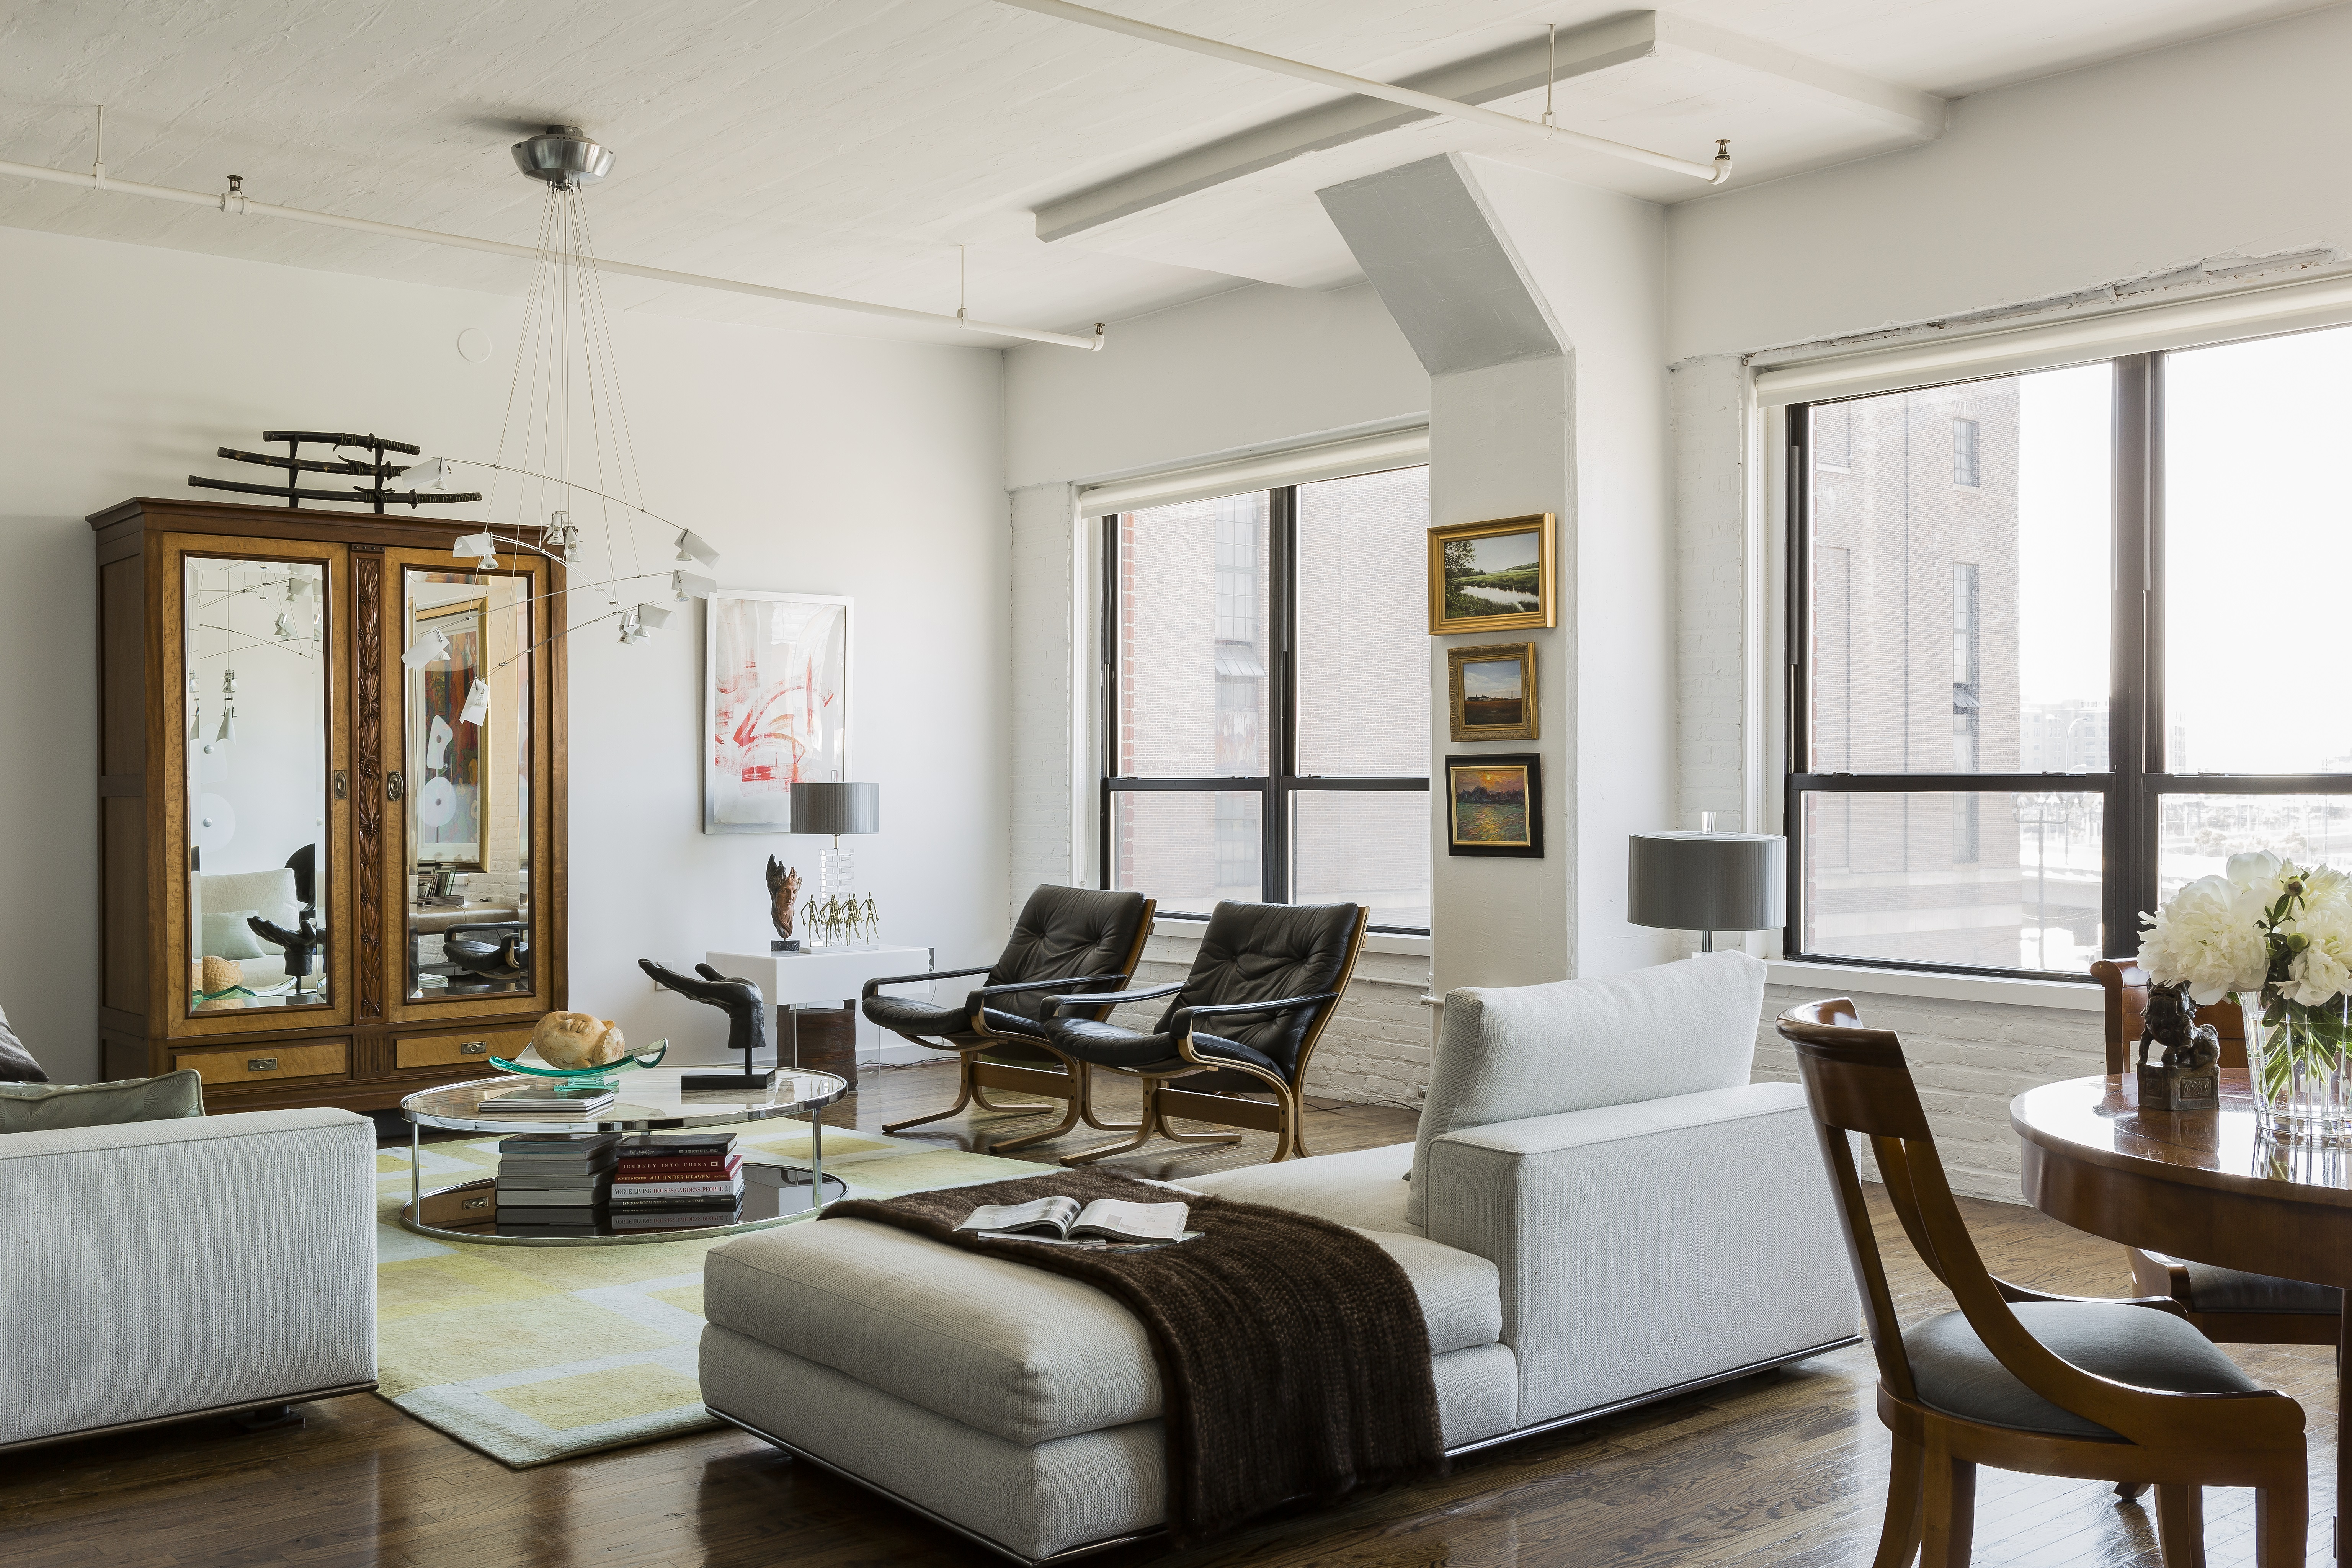 StyleCarrot - Design Diary: Leather District Loft by Michael Ferzoco